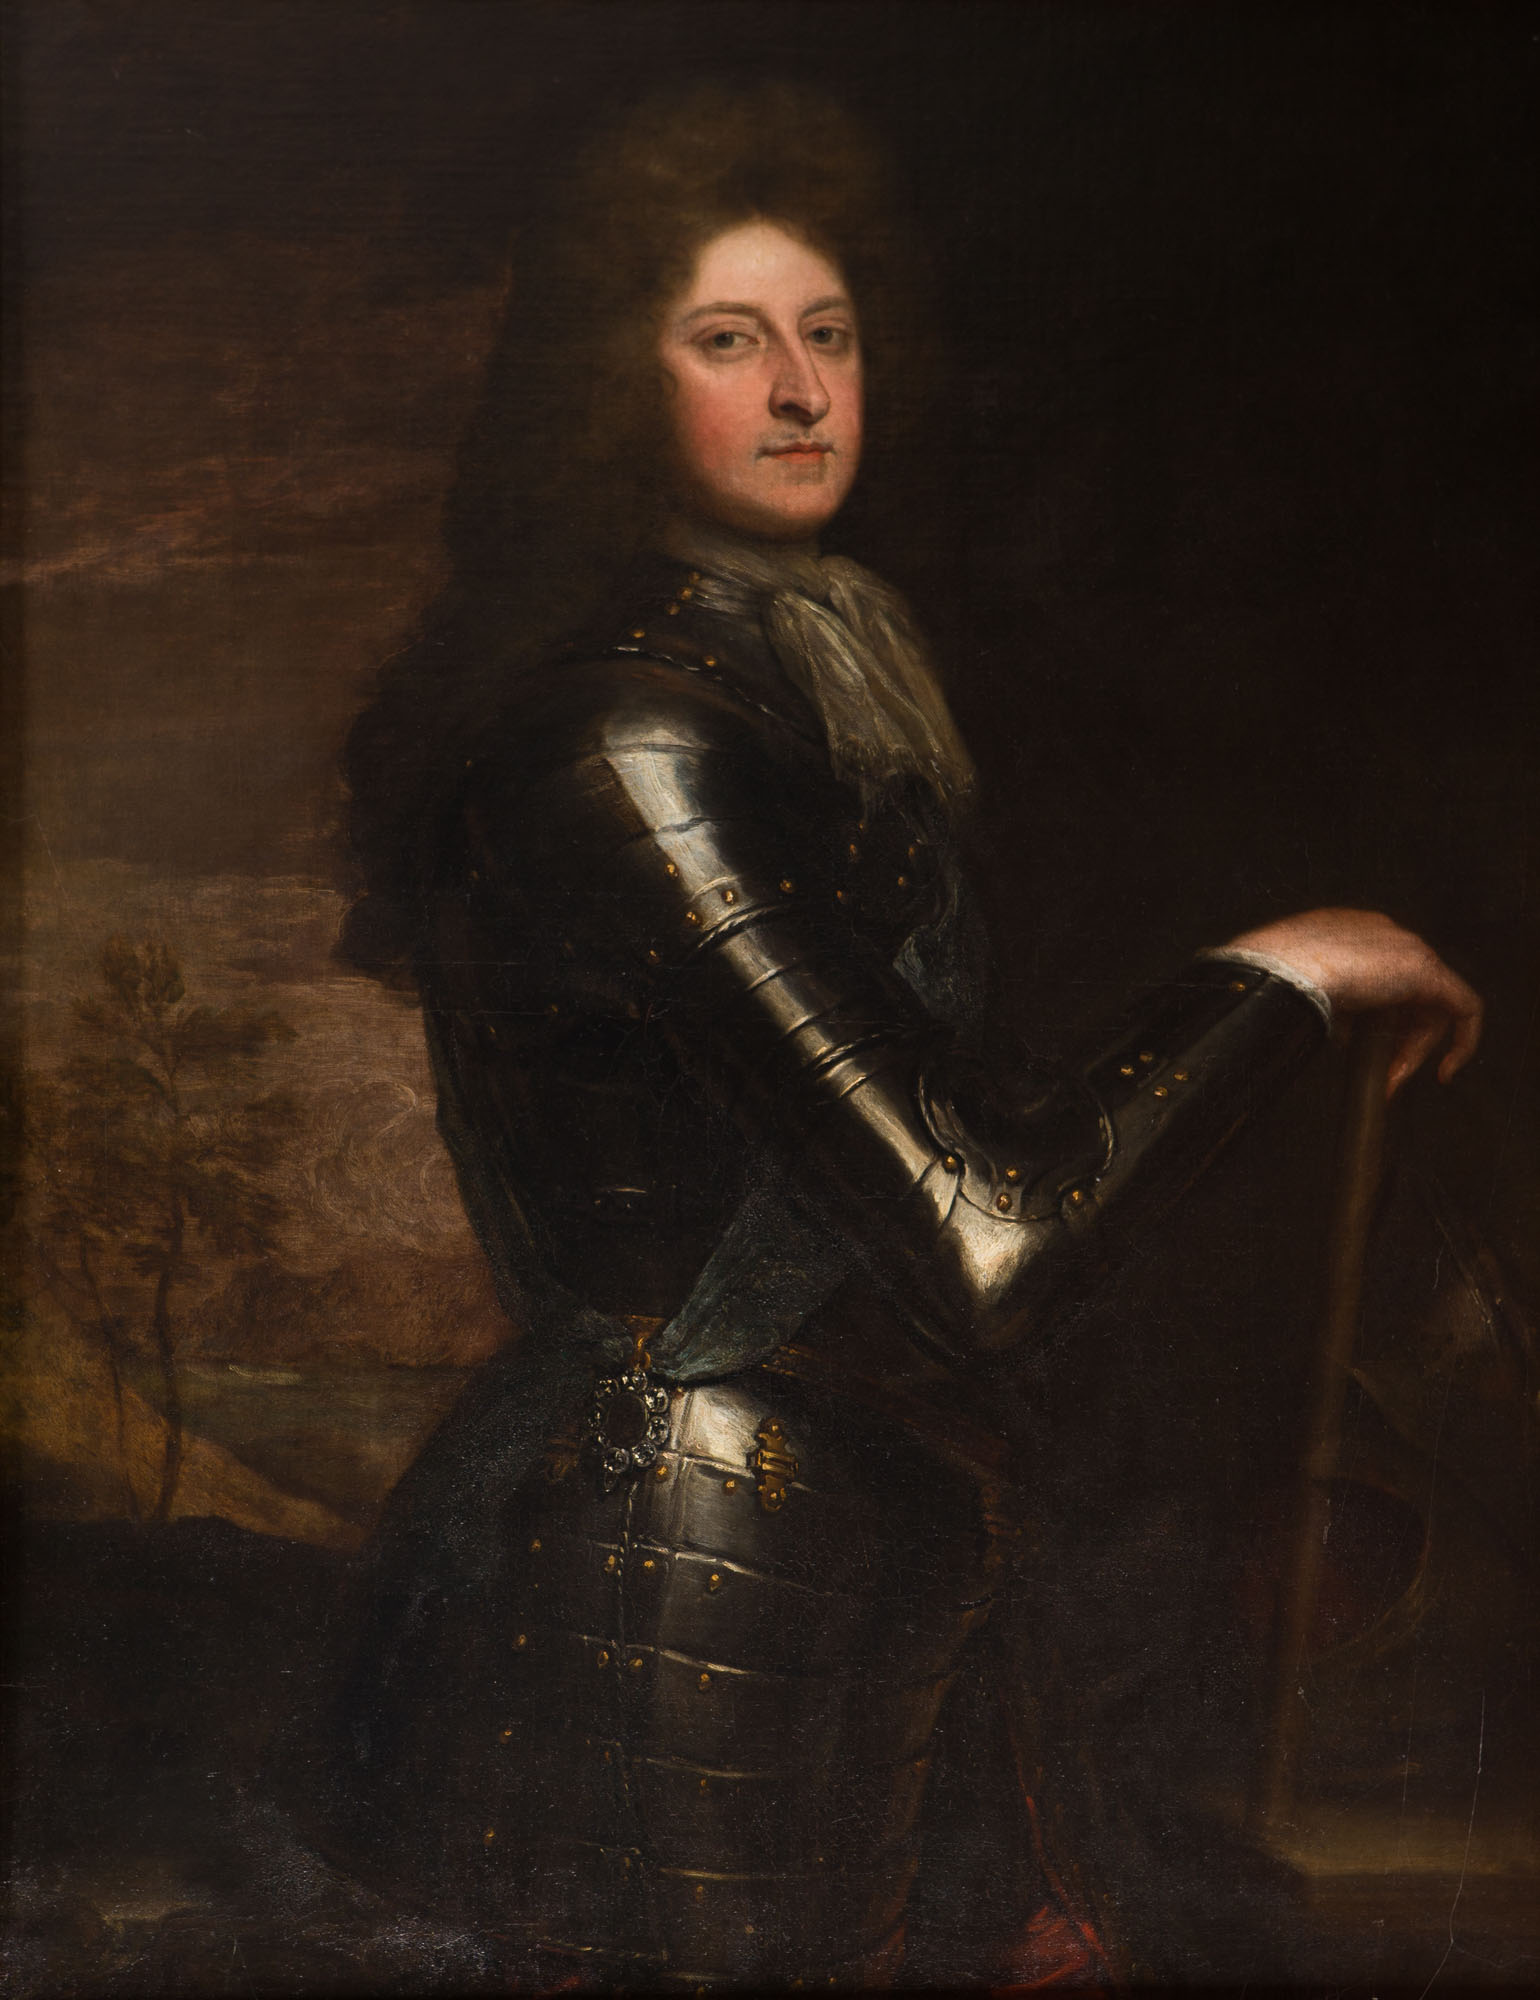 Portrait of William Cavendish, 1st Duke of Devonshire, by Sir Godfrey Kneller (1646-1723).